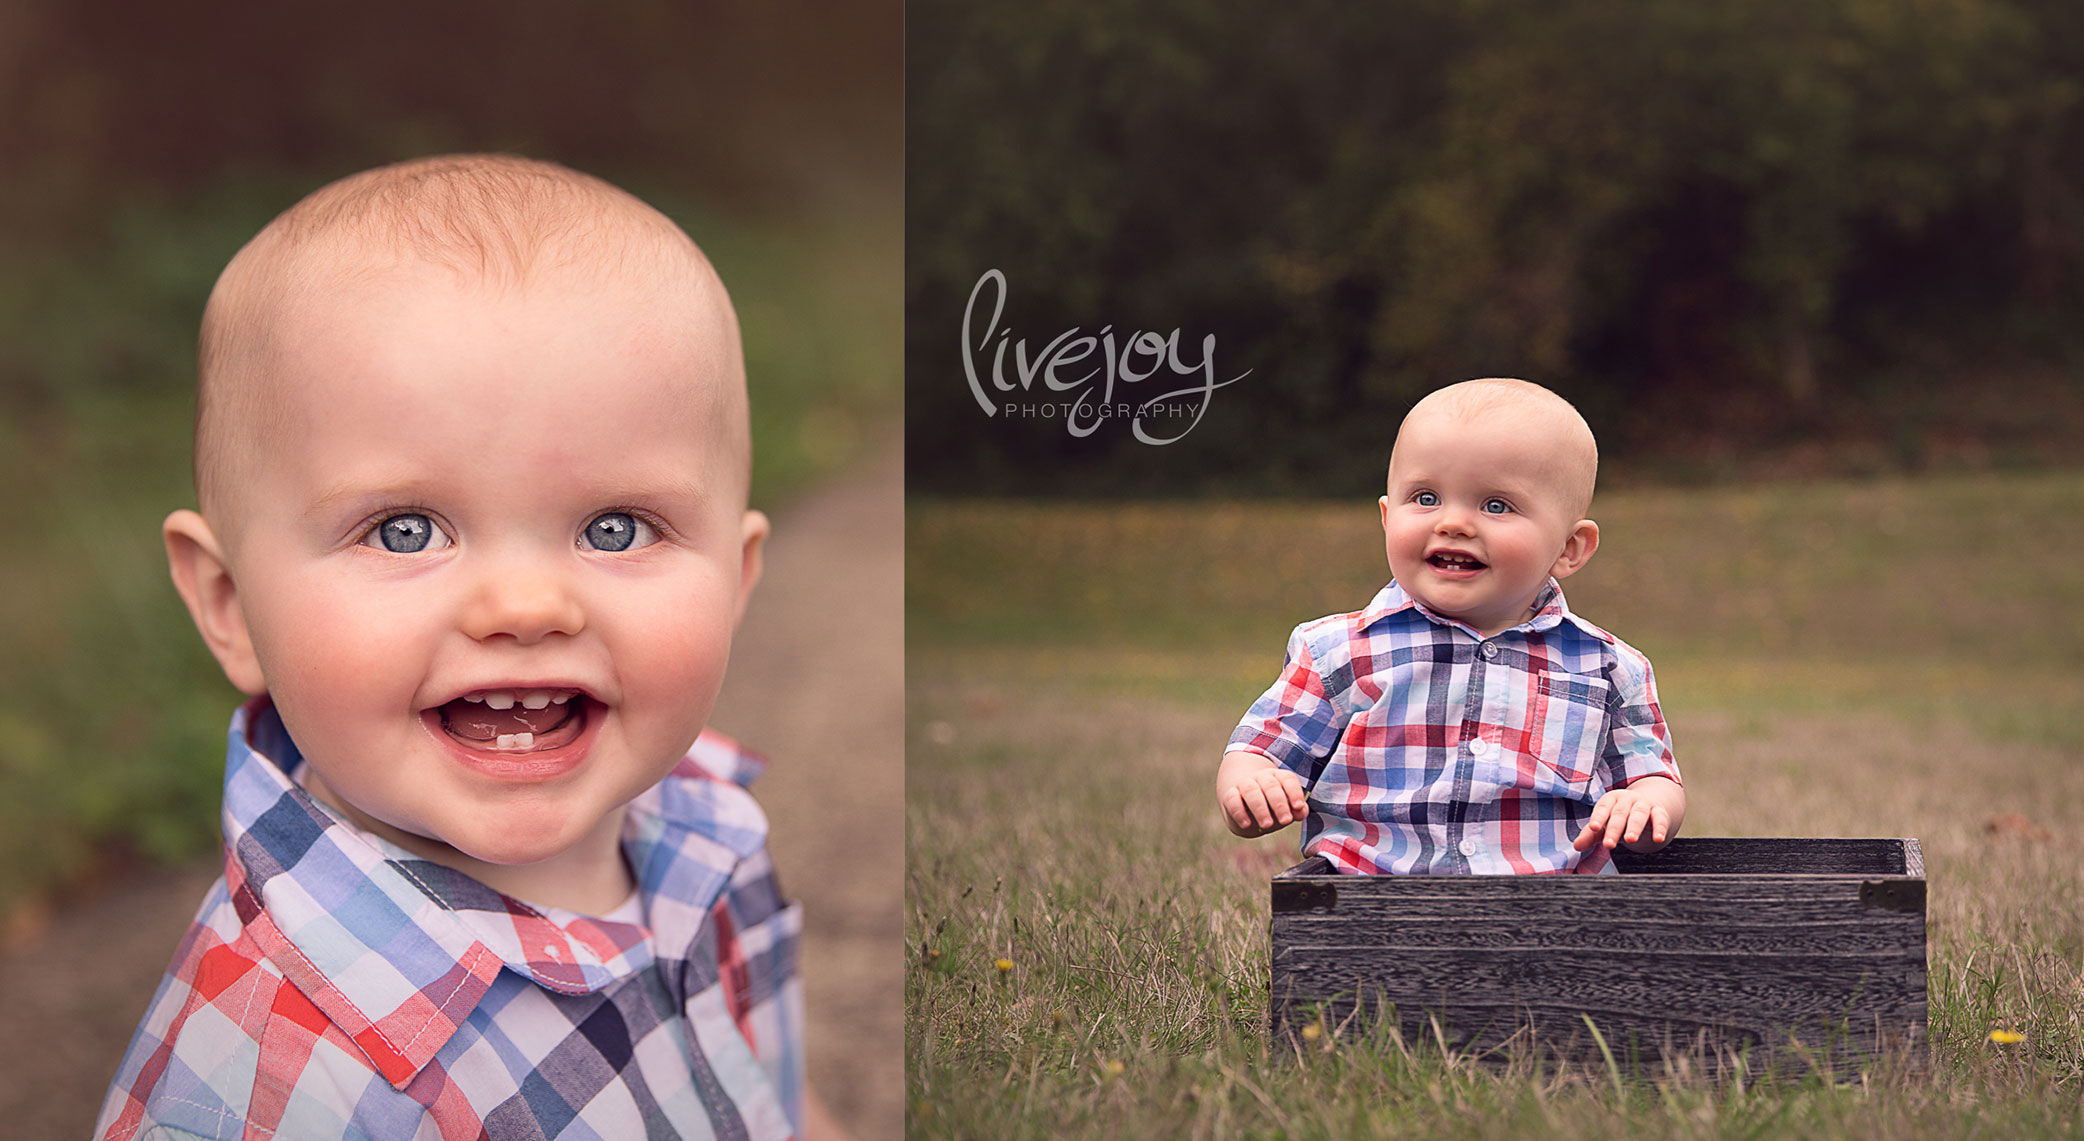 9 Months Photography | Oregon | LiveJoy Photography